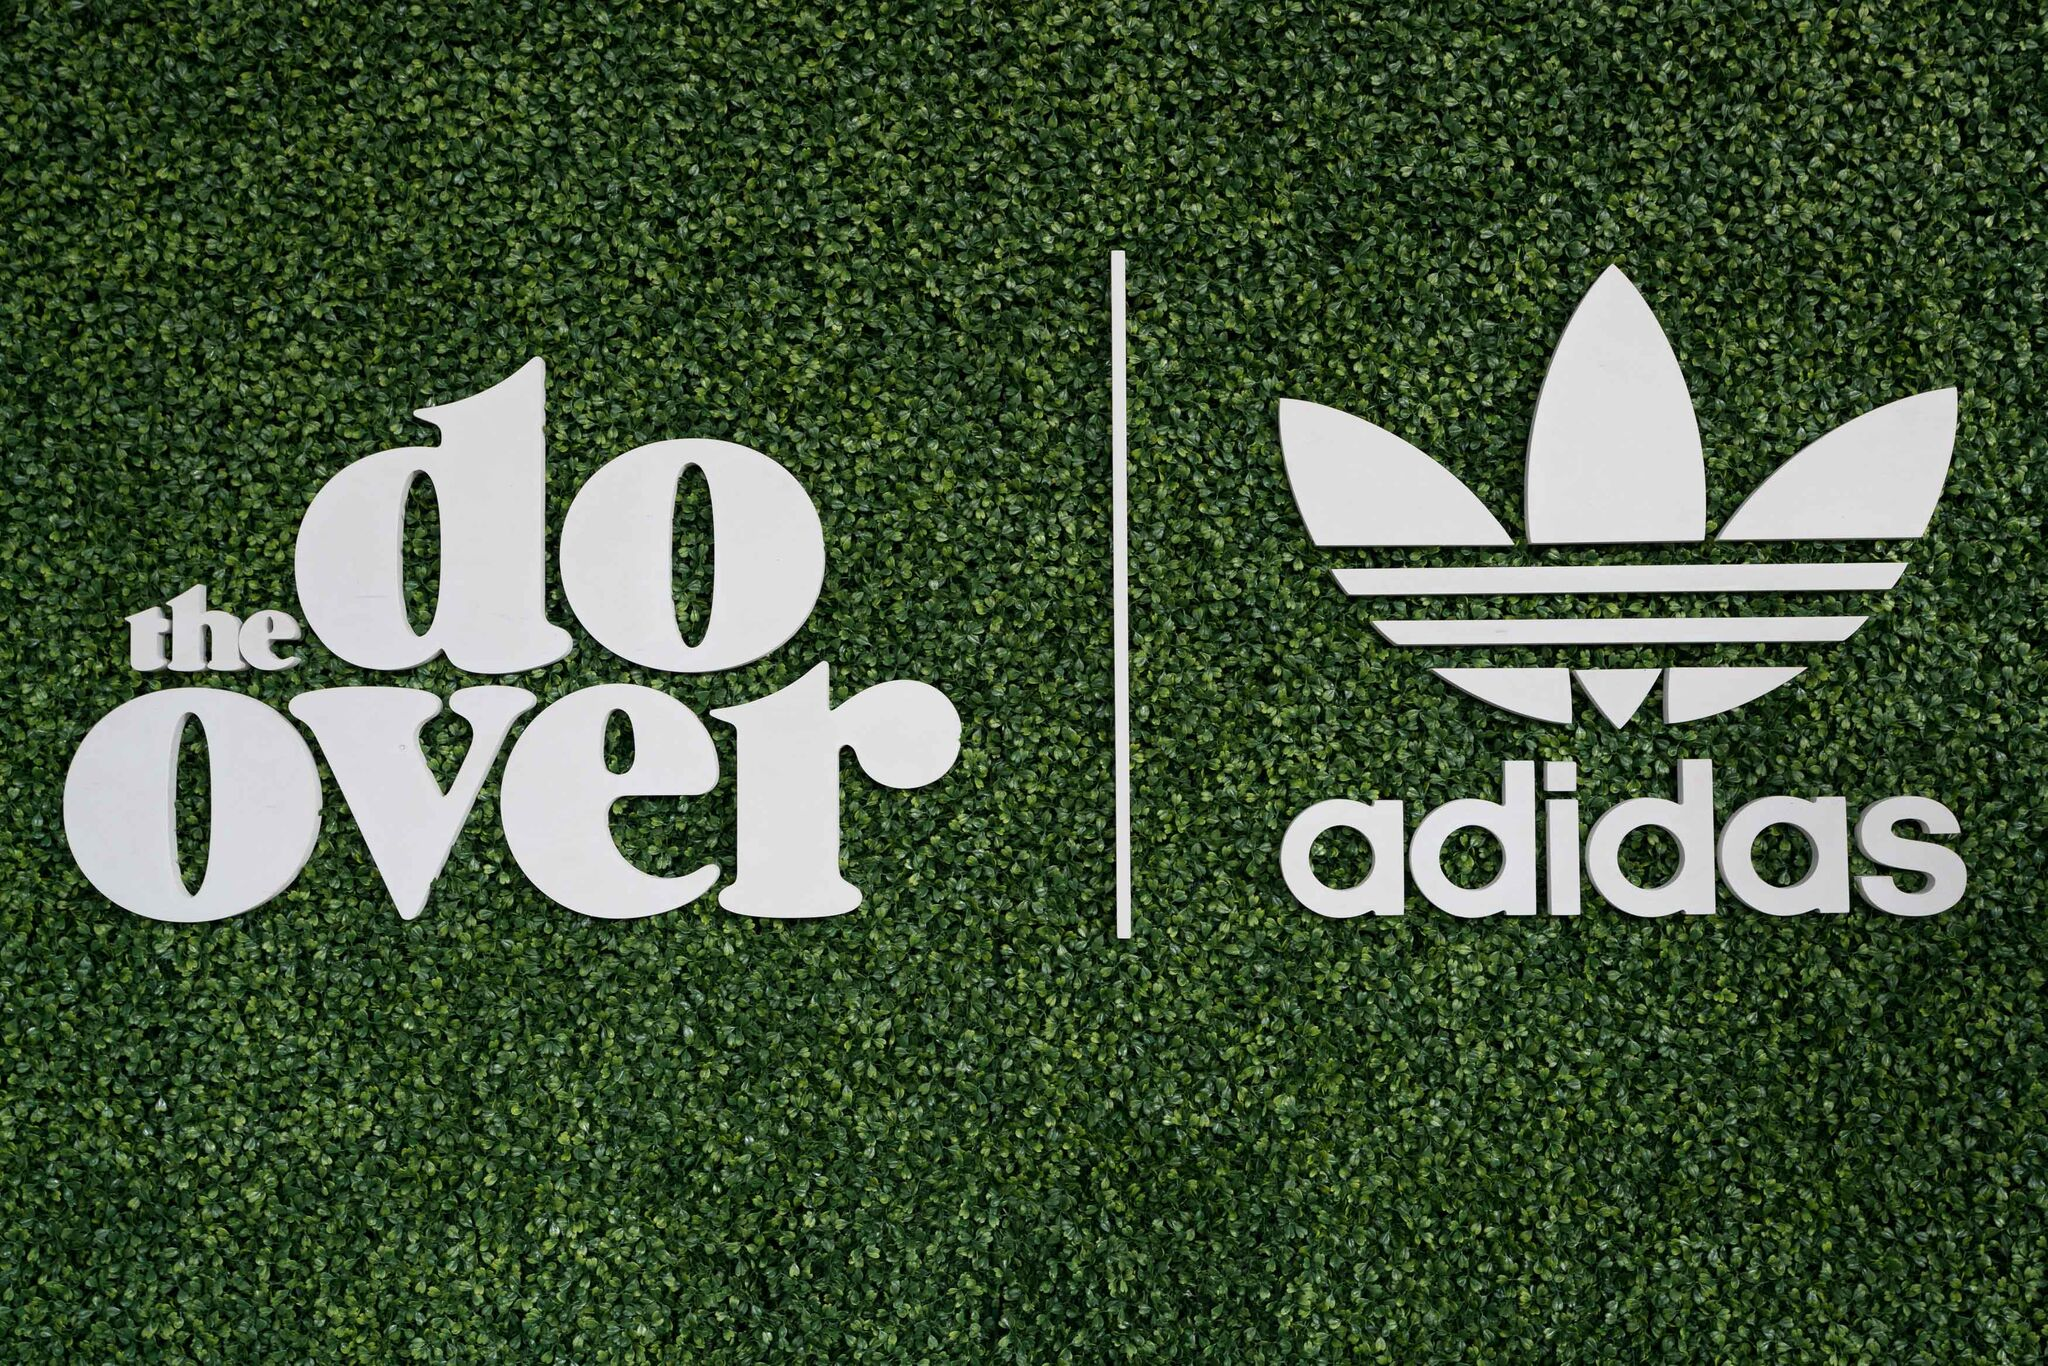 Adidas Do-Over - Client: Party Animal, Roundhouse Agency & AdidasProducer & Stylist